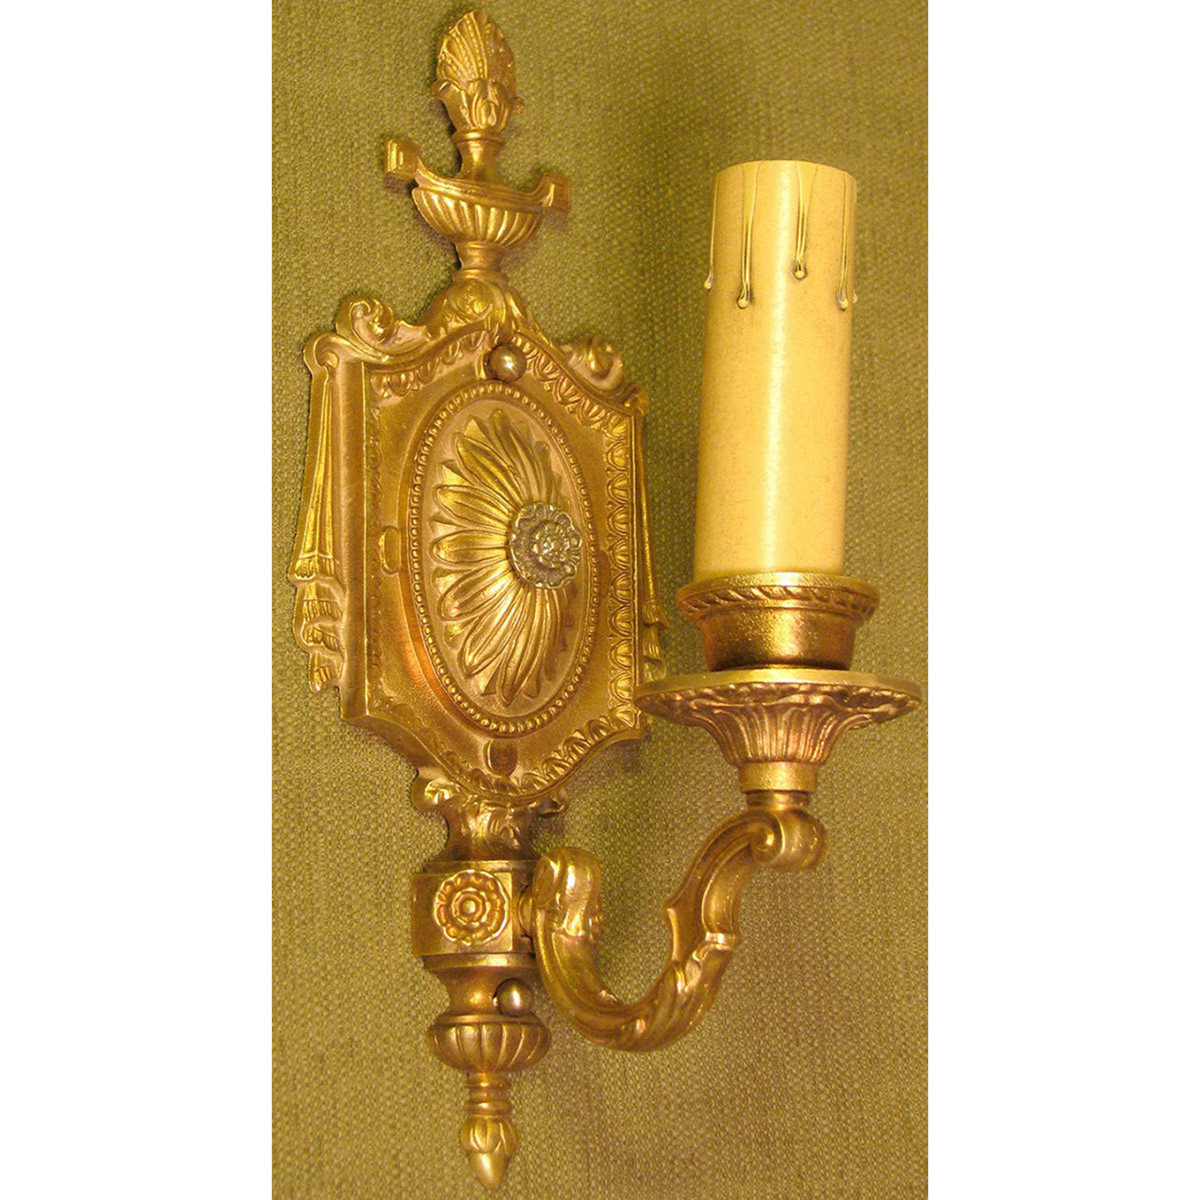 L12110 - Antique Beaux Arts Candle Arm Wall Sconce